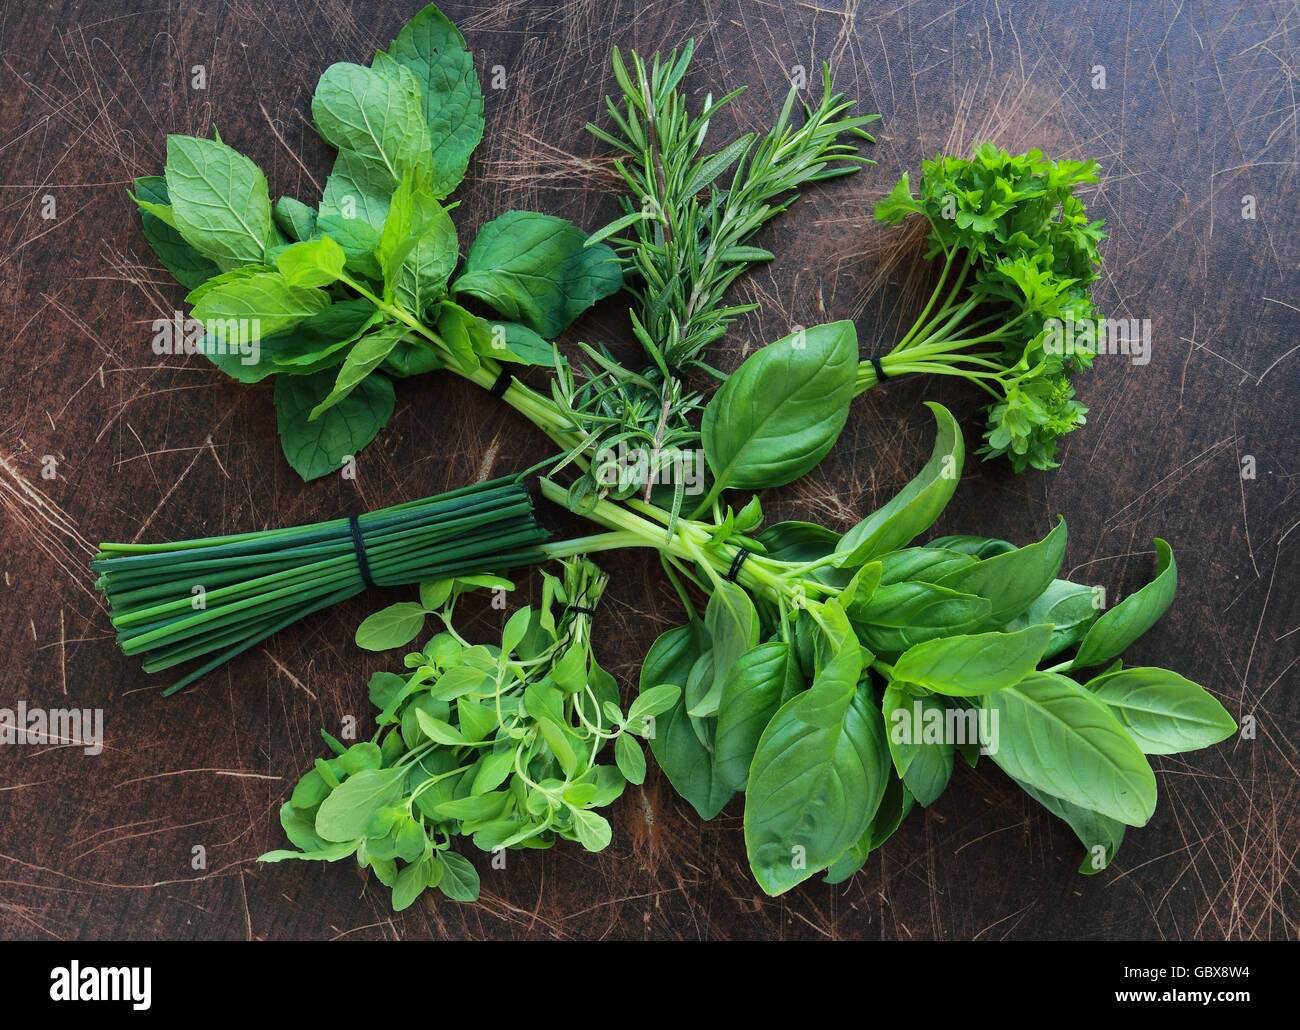 Fresh herbs from garden, view from above - Stock Image